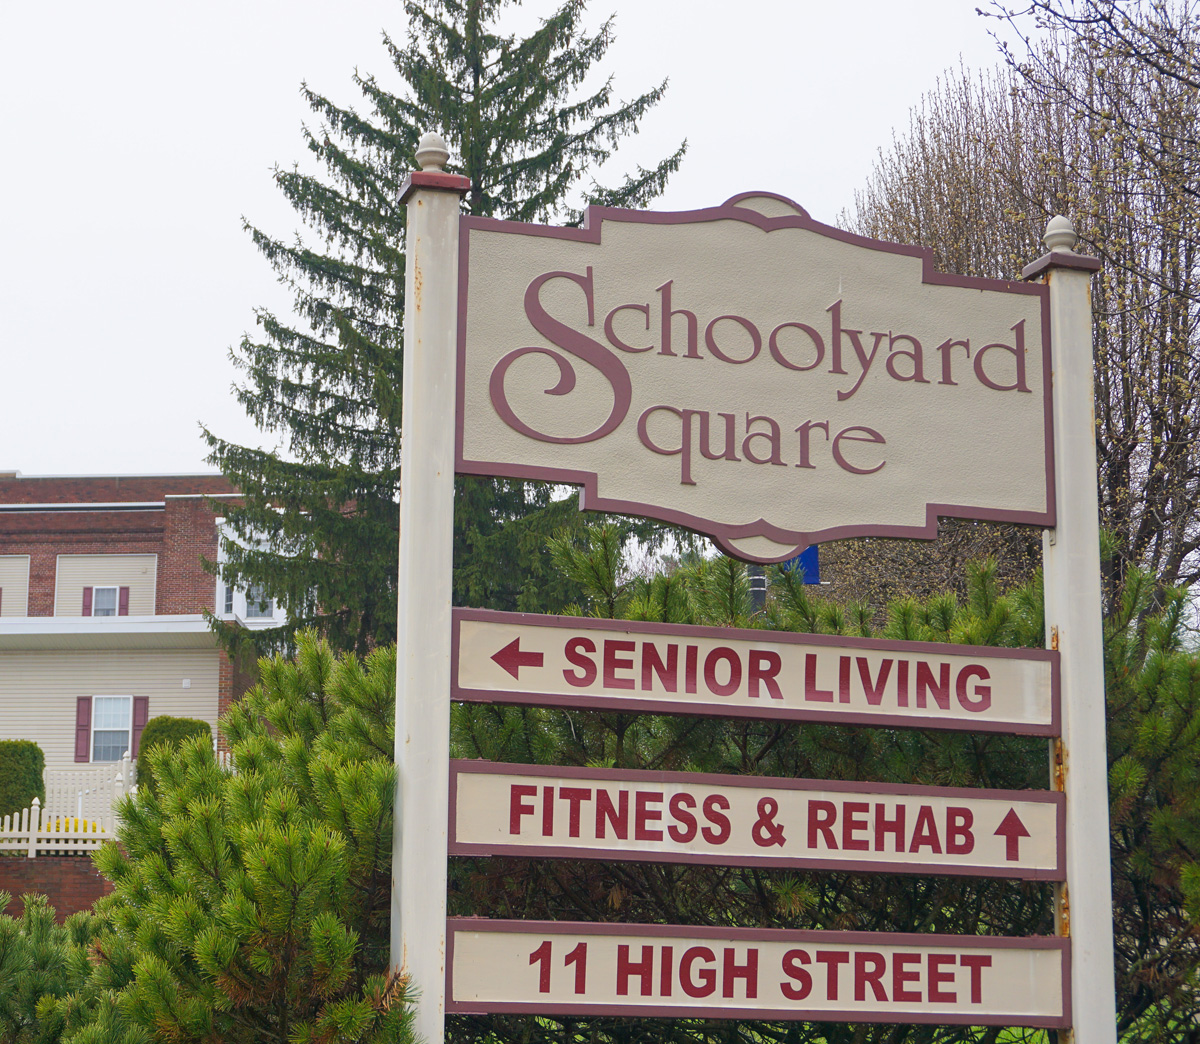 Welcome to Schoolyard Square!